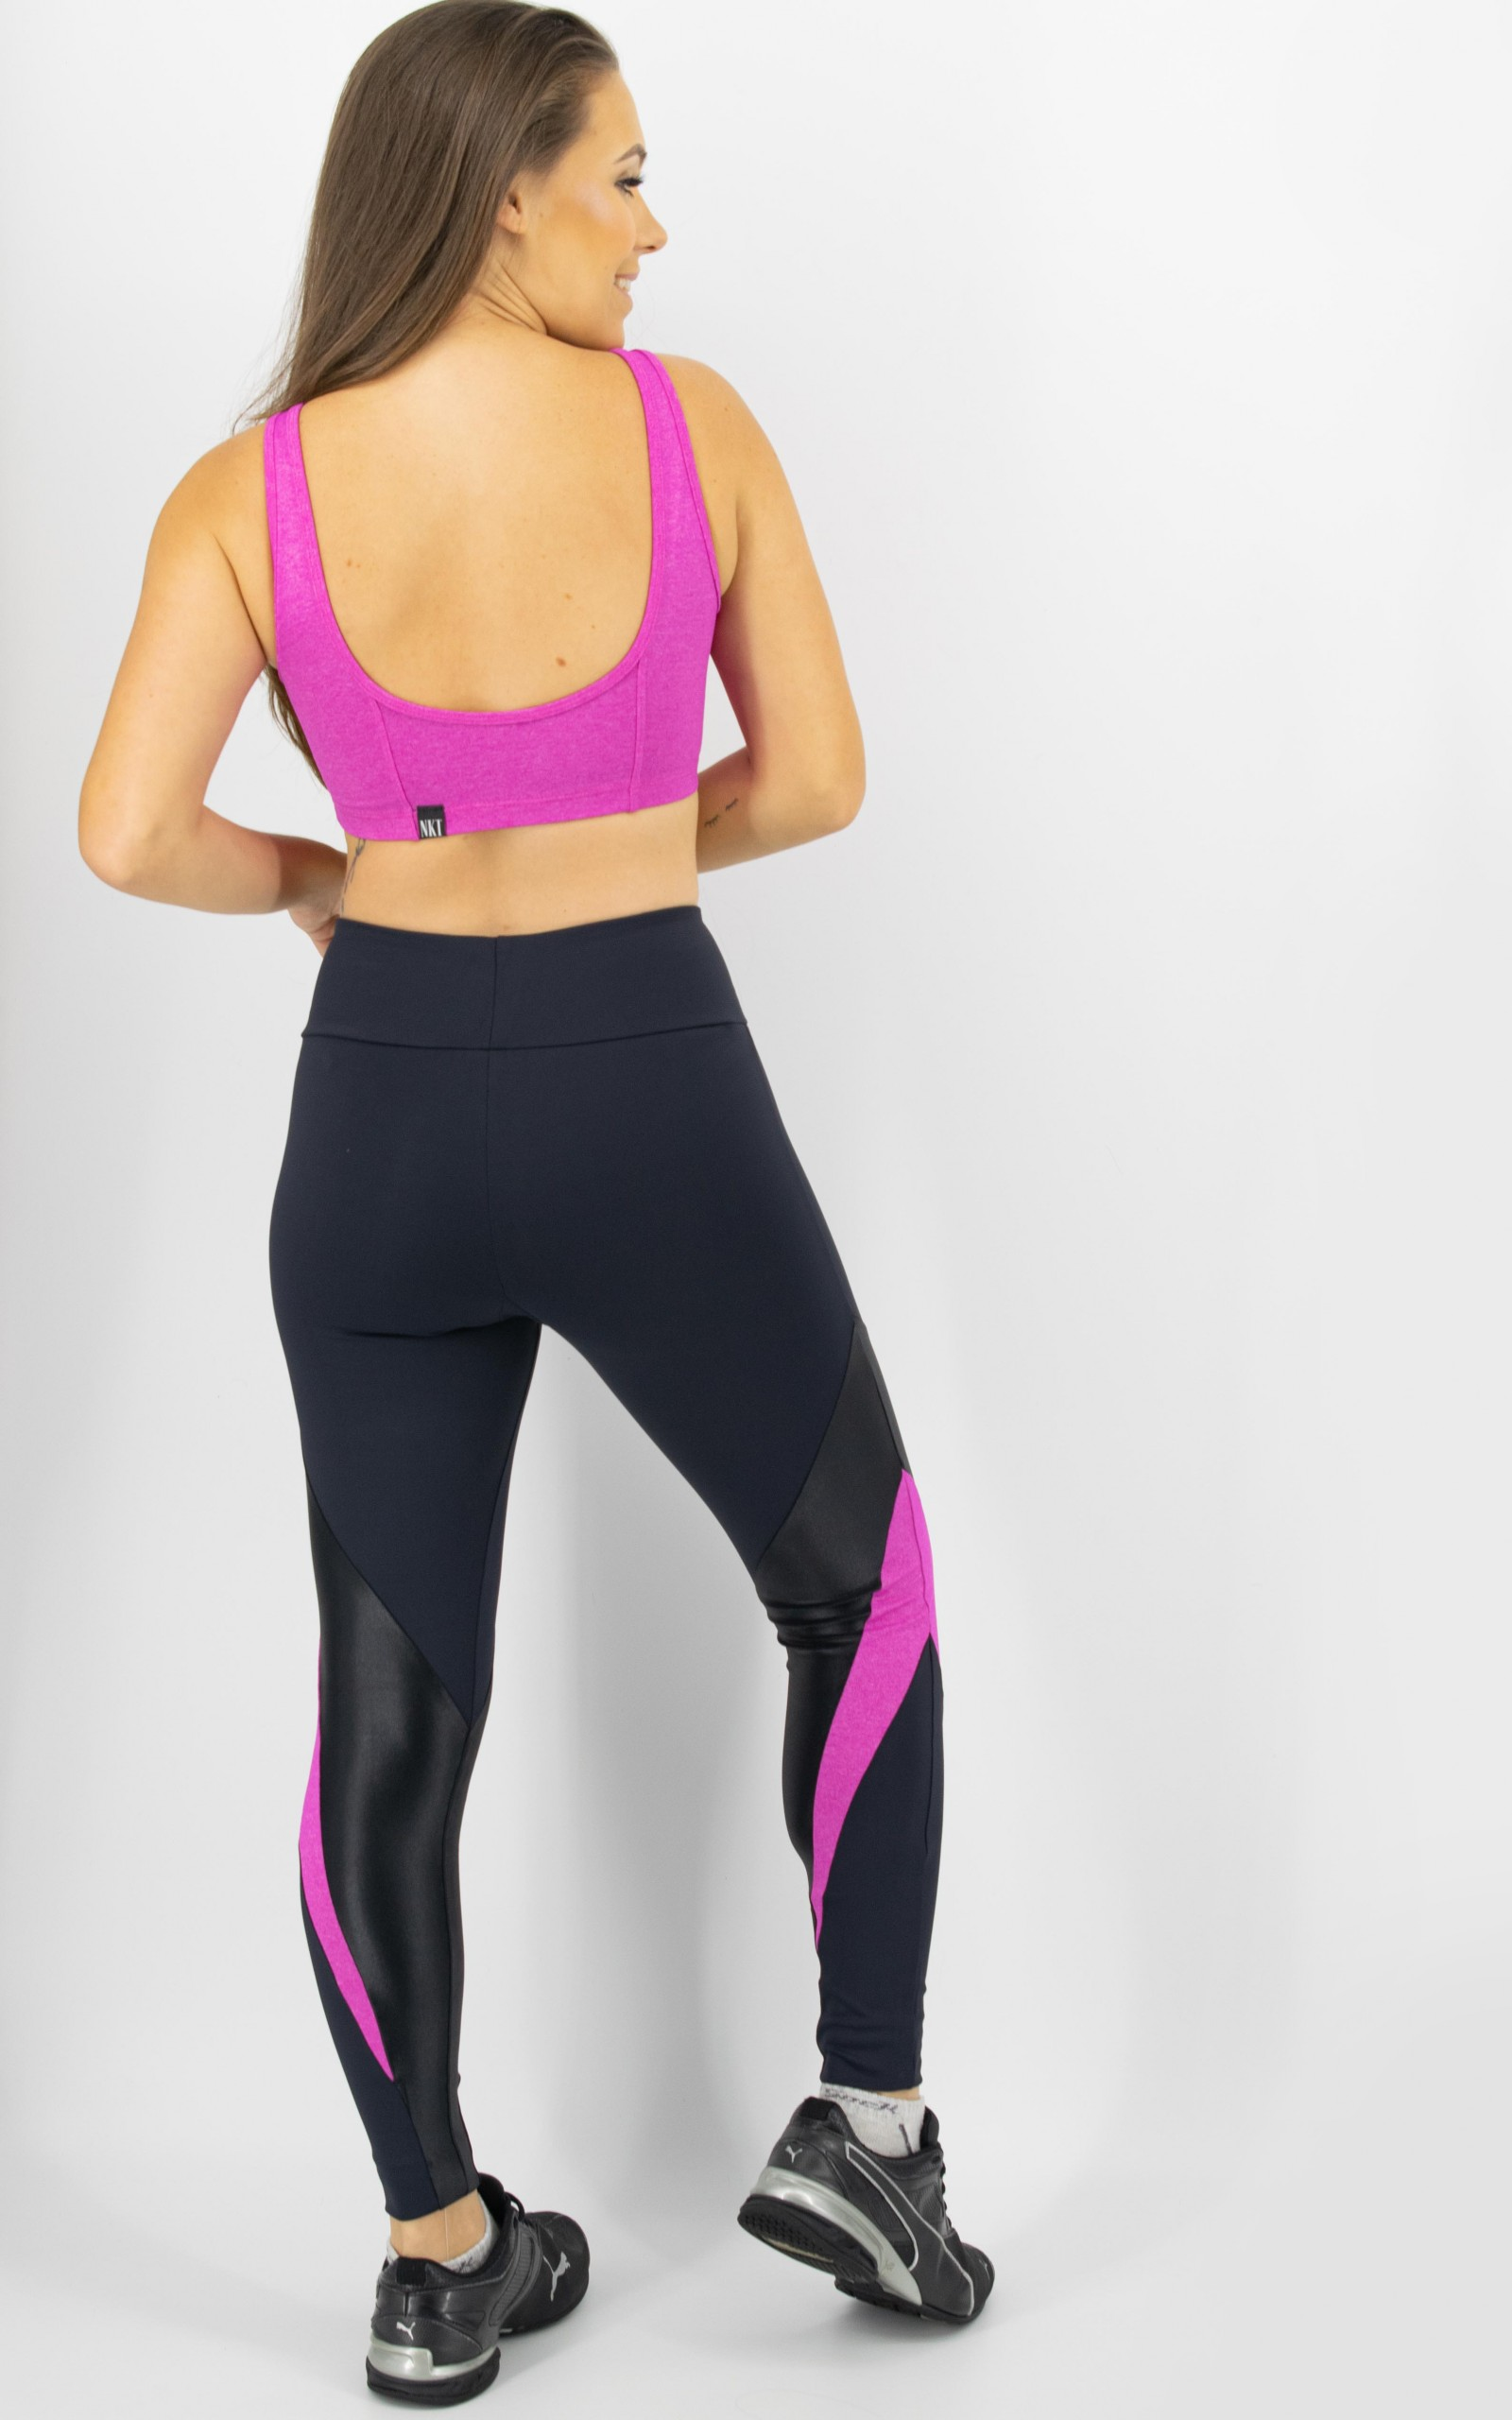 Top Arrow Pink, Coleção Move Your Body - NKT Fitwear Moda Fitness